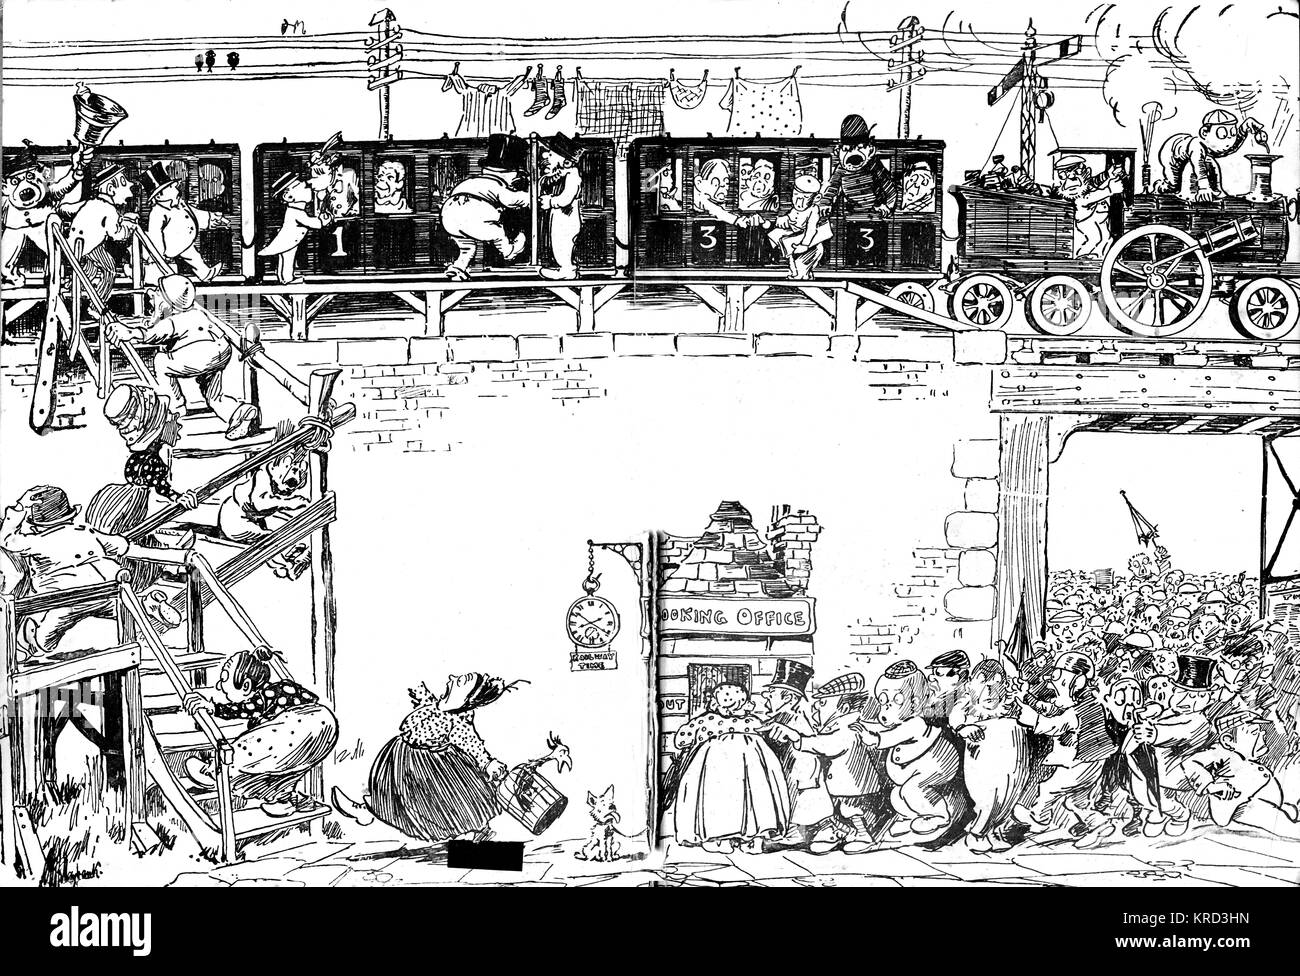 A comical cartoon showing elves, or possibly pixies, involved in a train crash. - Stock Image